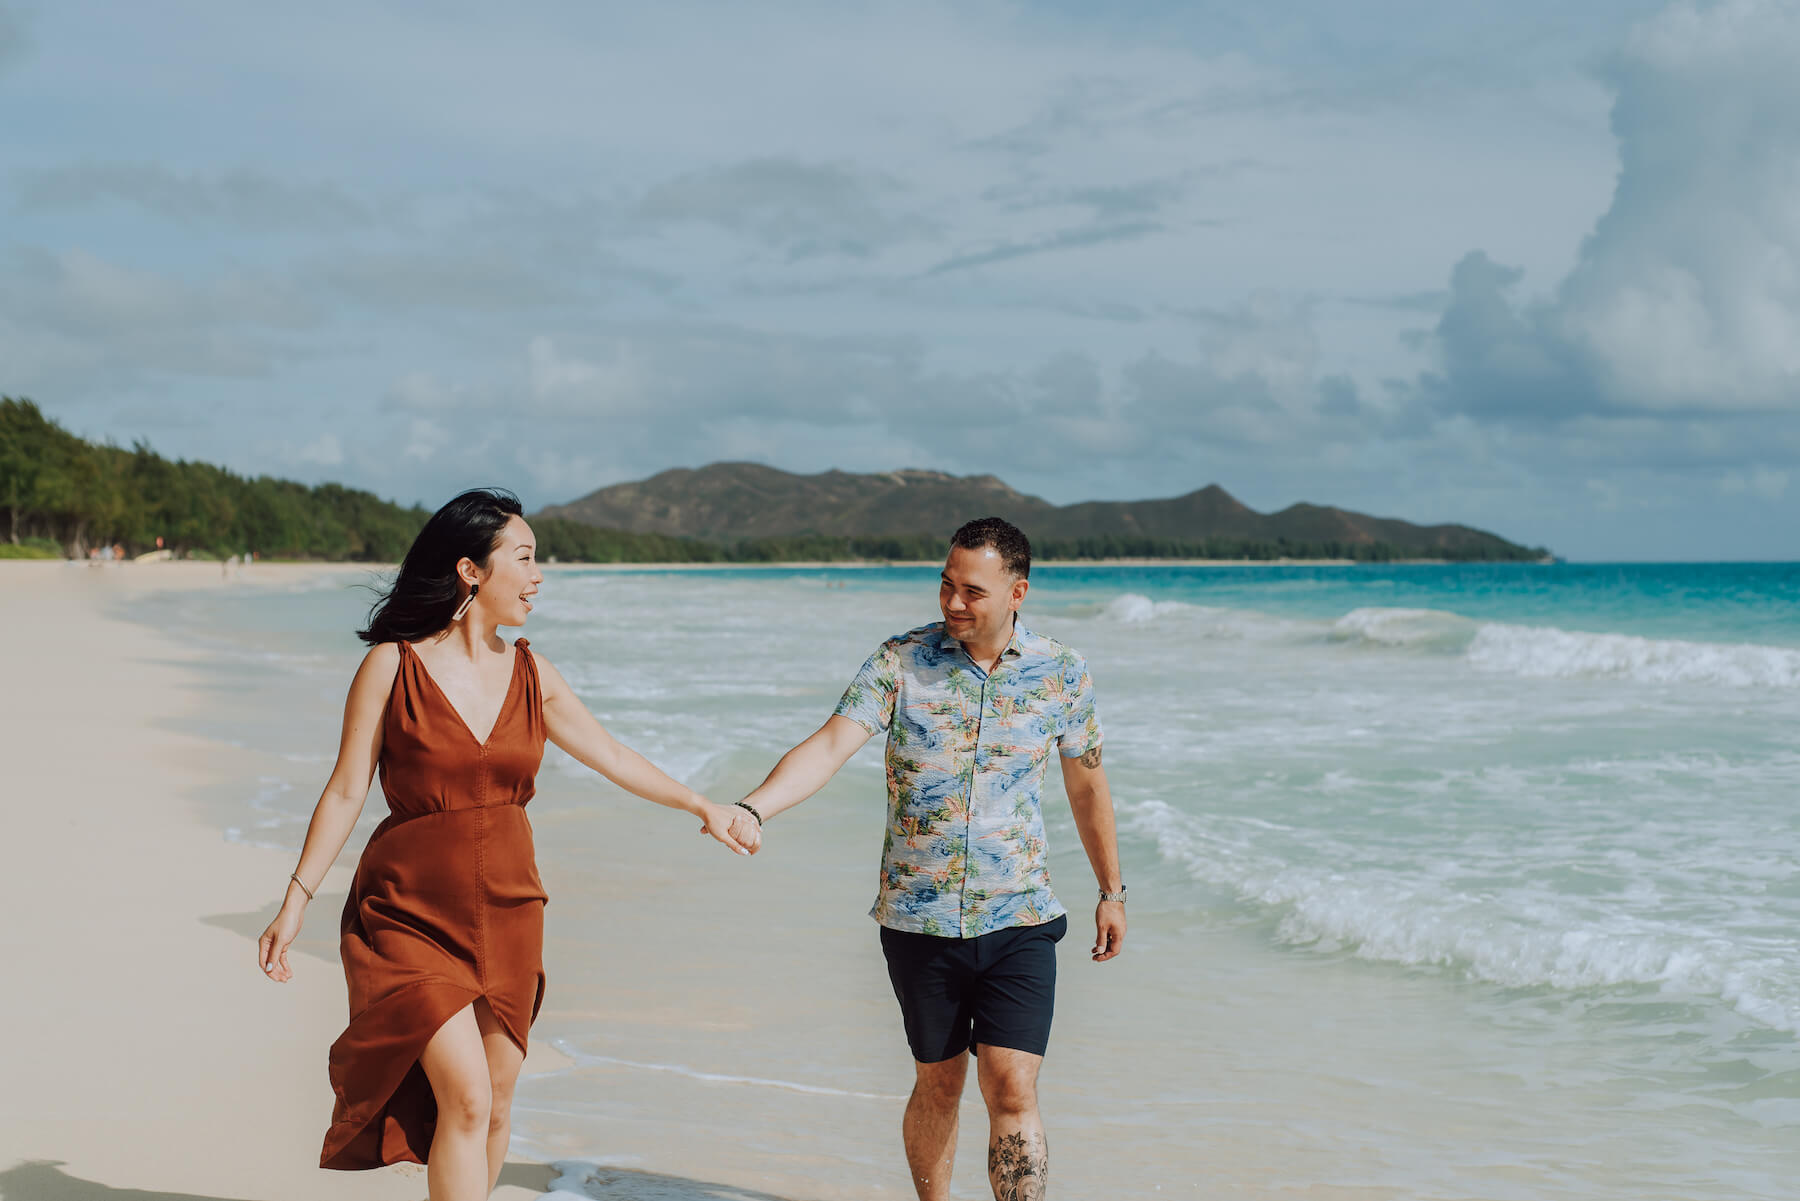 A couple holding hands and walking on the beach in Honolulu, Hawaii